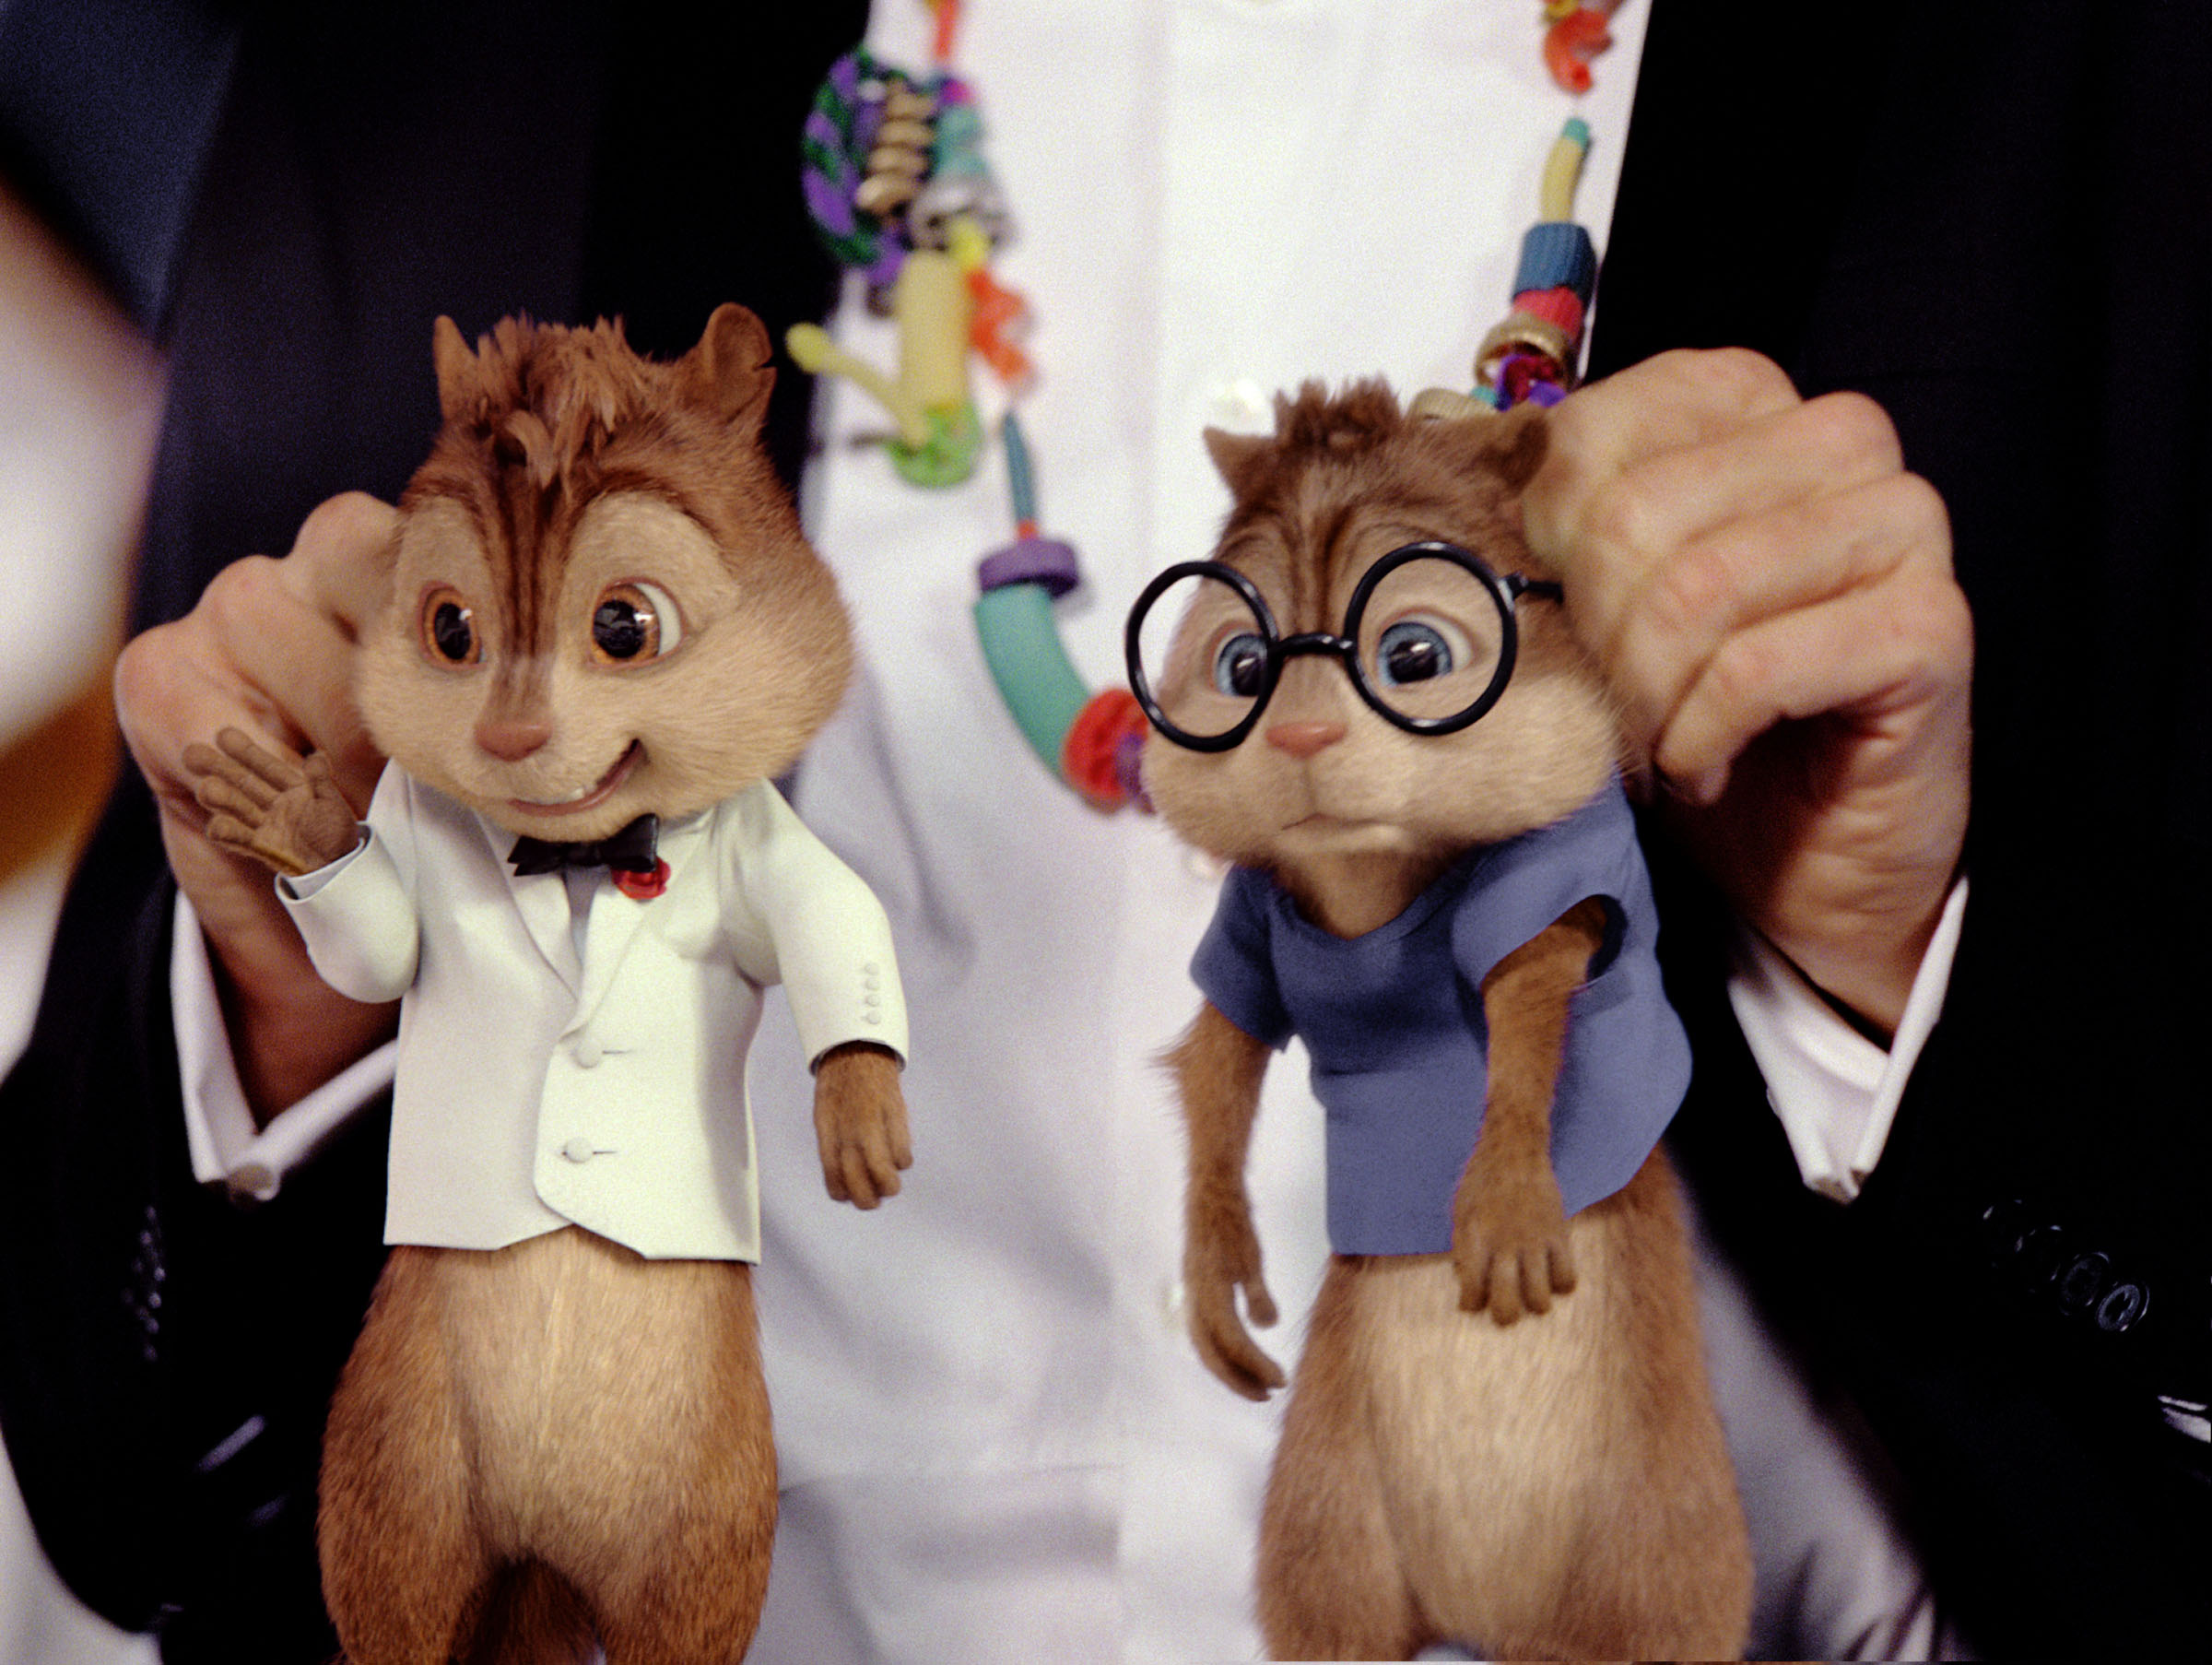 Alvin And The Chipmunks 3 Images alvin and the chipmunks 3: movie review - hello! welcome to